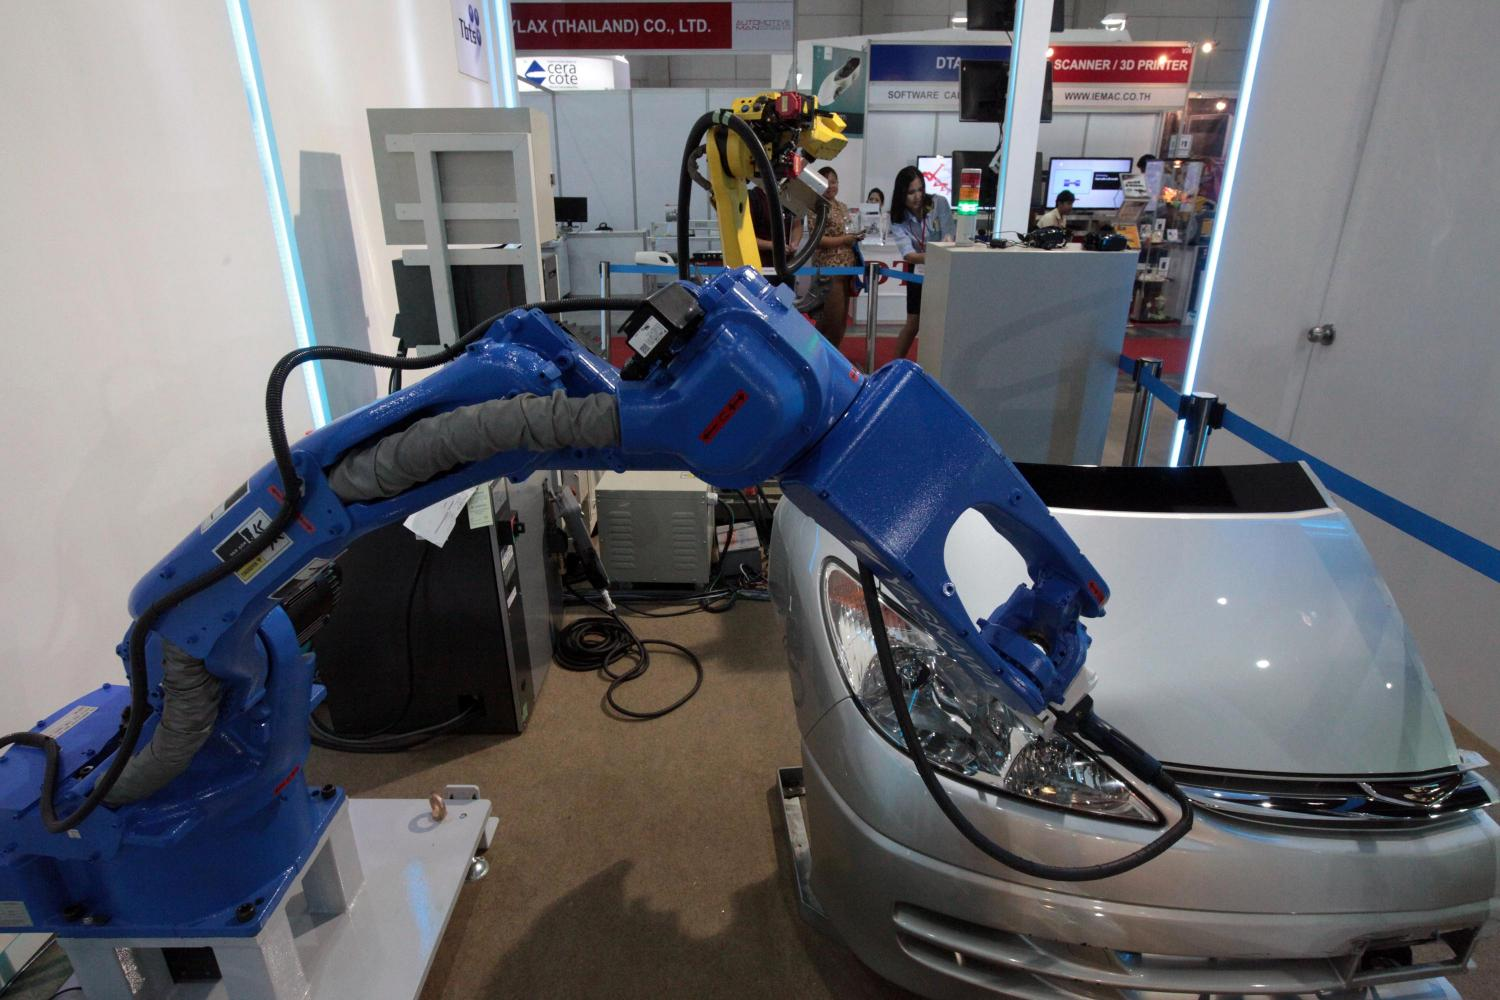 A robot manufactures a car at an expo, promoting a full spectrum of technologies.Weerawong Wongpreedee